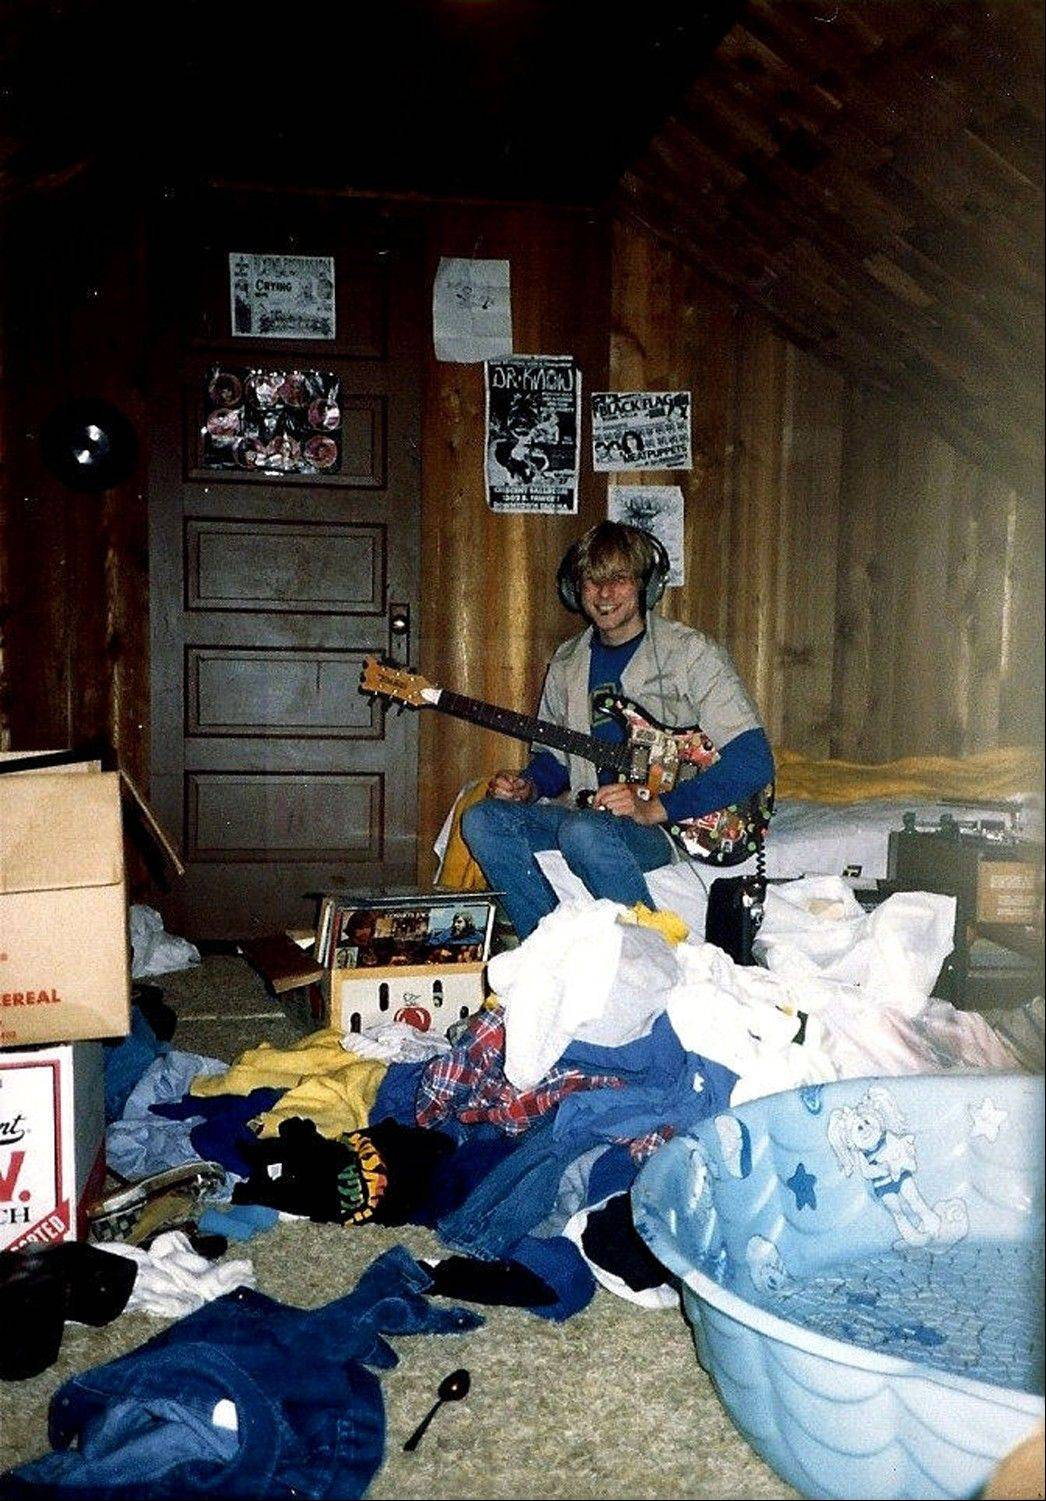 A young Kurt Cobain plays guitar in his childhood home in Aberdeen, Wash. Cobain's mother, Wendy O'Connor, is putting the 1.5-story Aberdeen bungalow -- which is assessed at less than $67,000 -- on the market for $500,000. But she'd also be happy entering into a partnership with anyone who wants to turn it into a museum.